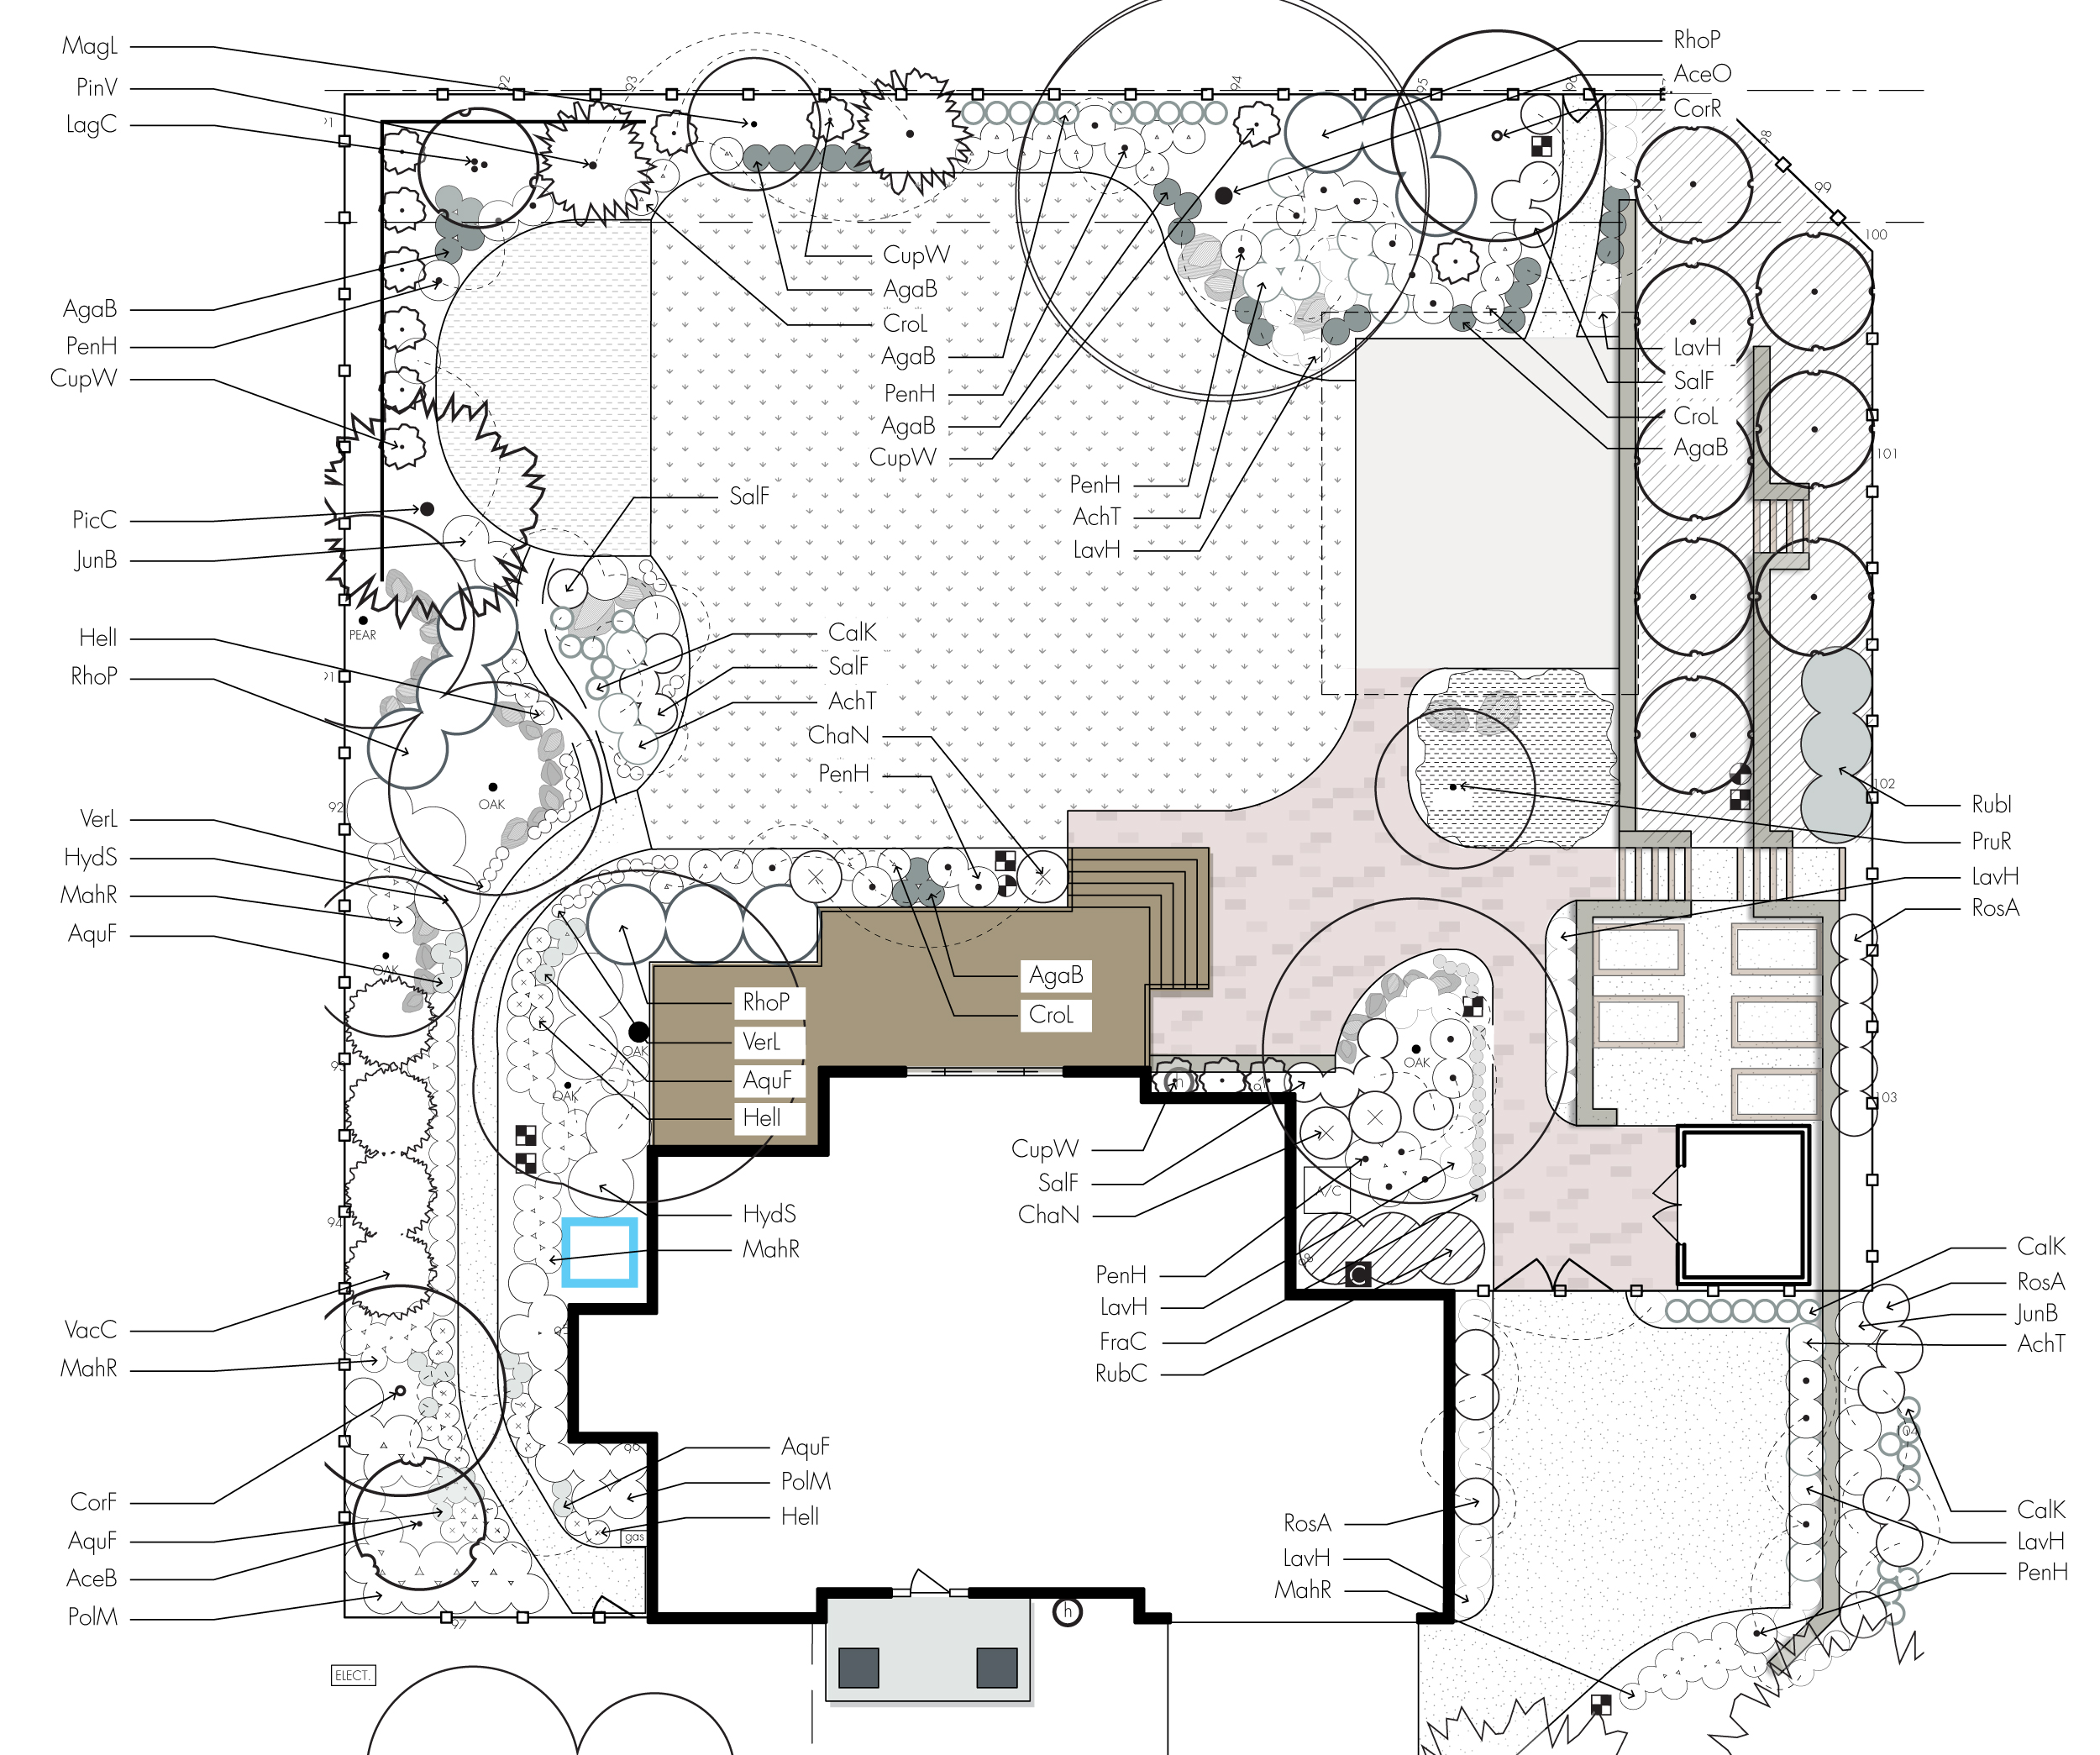 planting layout detailed design schematic example + residential + mixed  perennial garden + landscape architecture detail